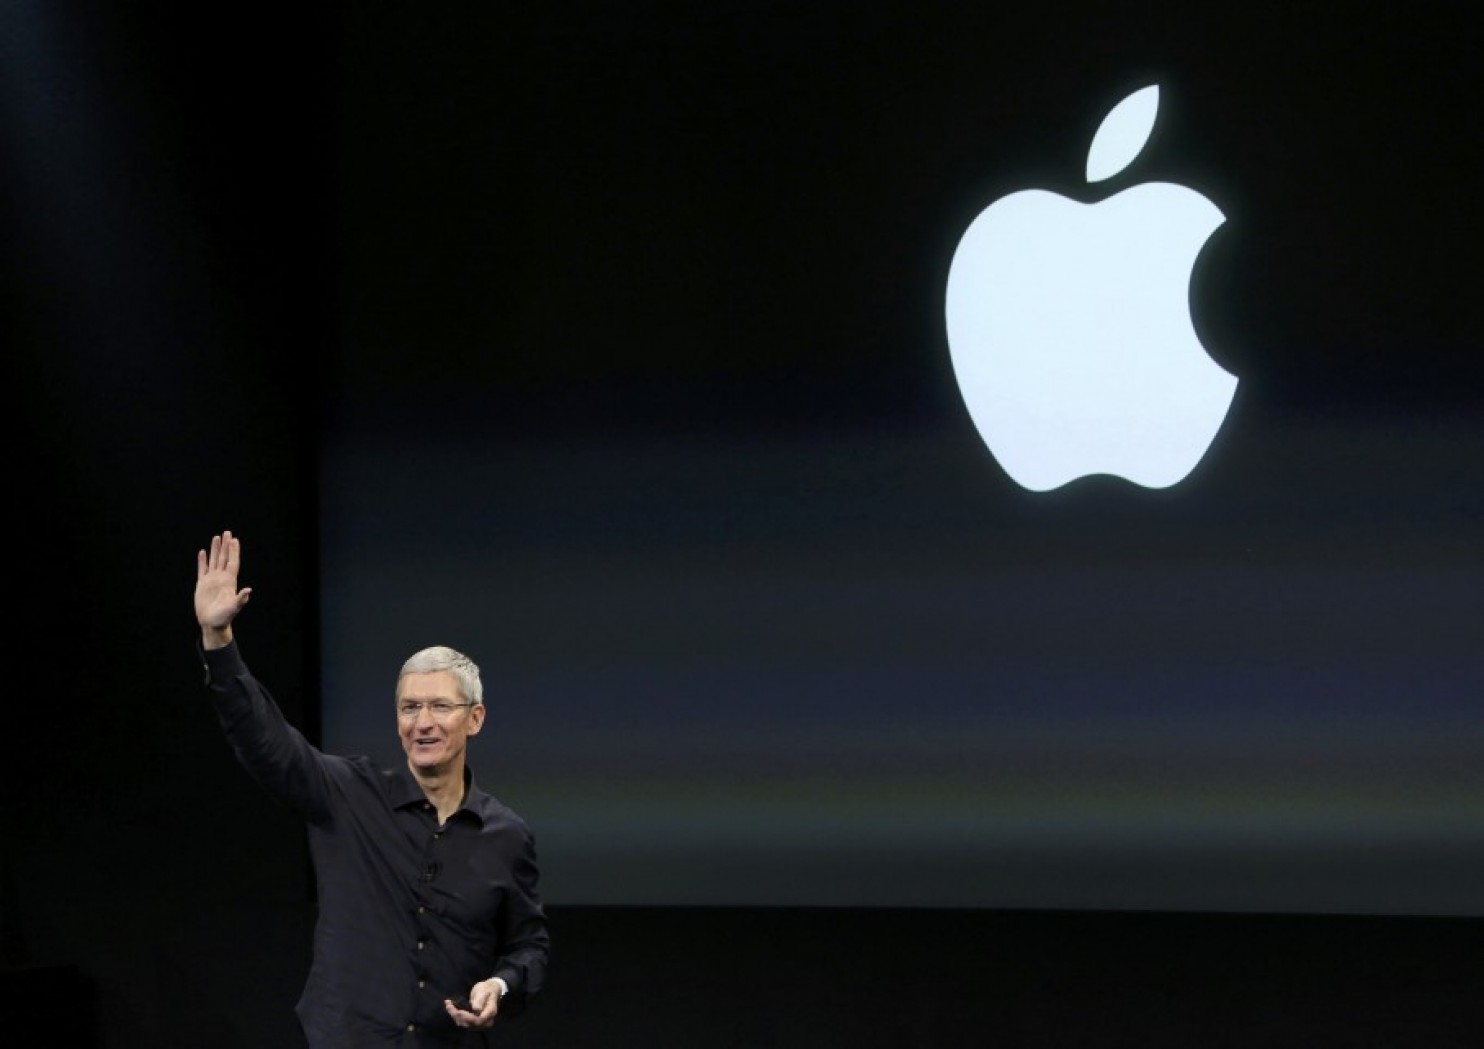 Apple's CEO is gay. Thank God